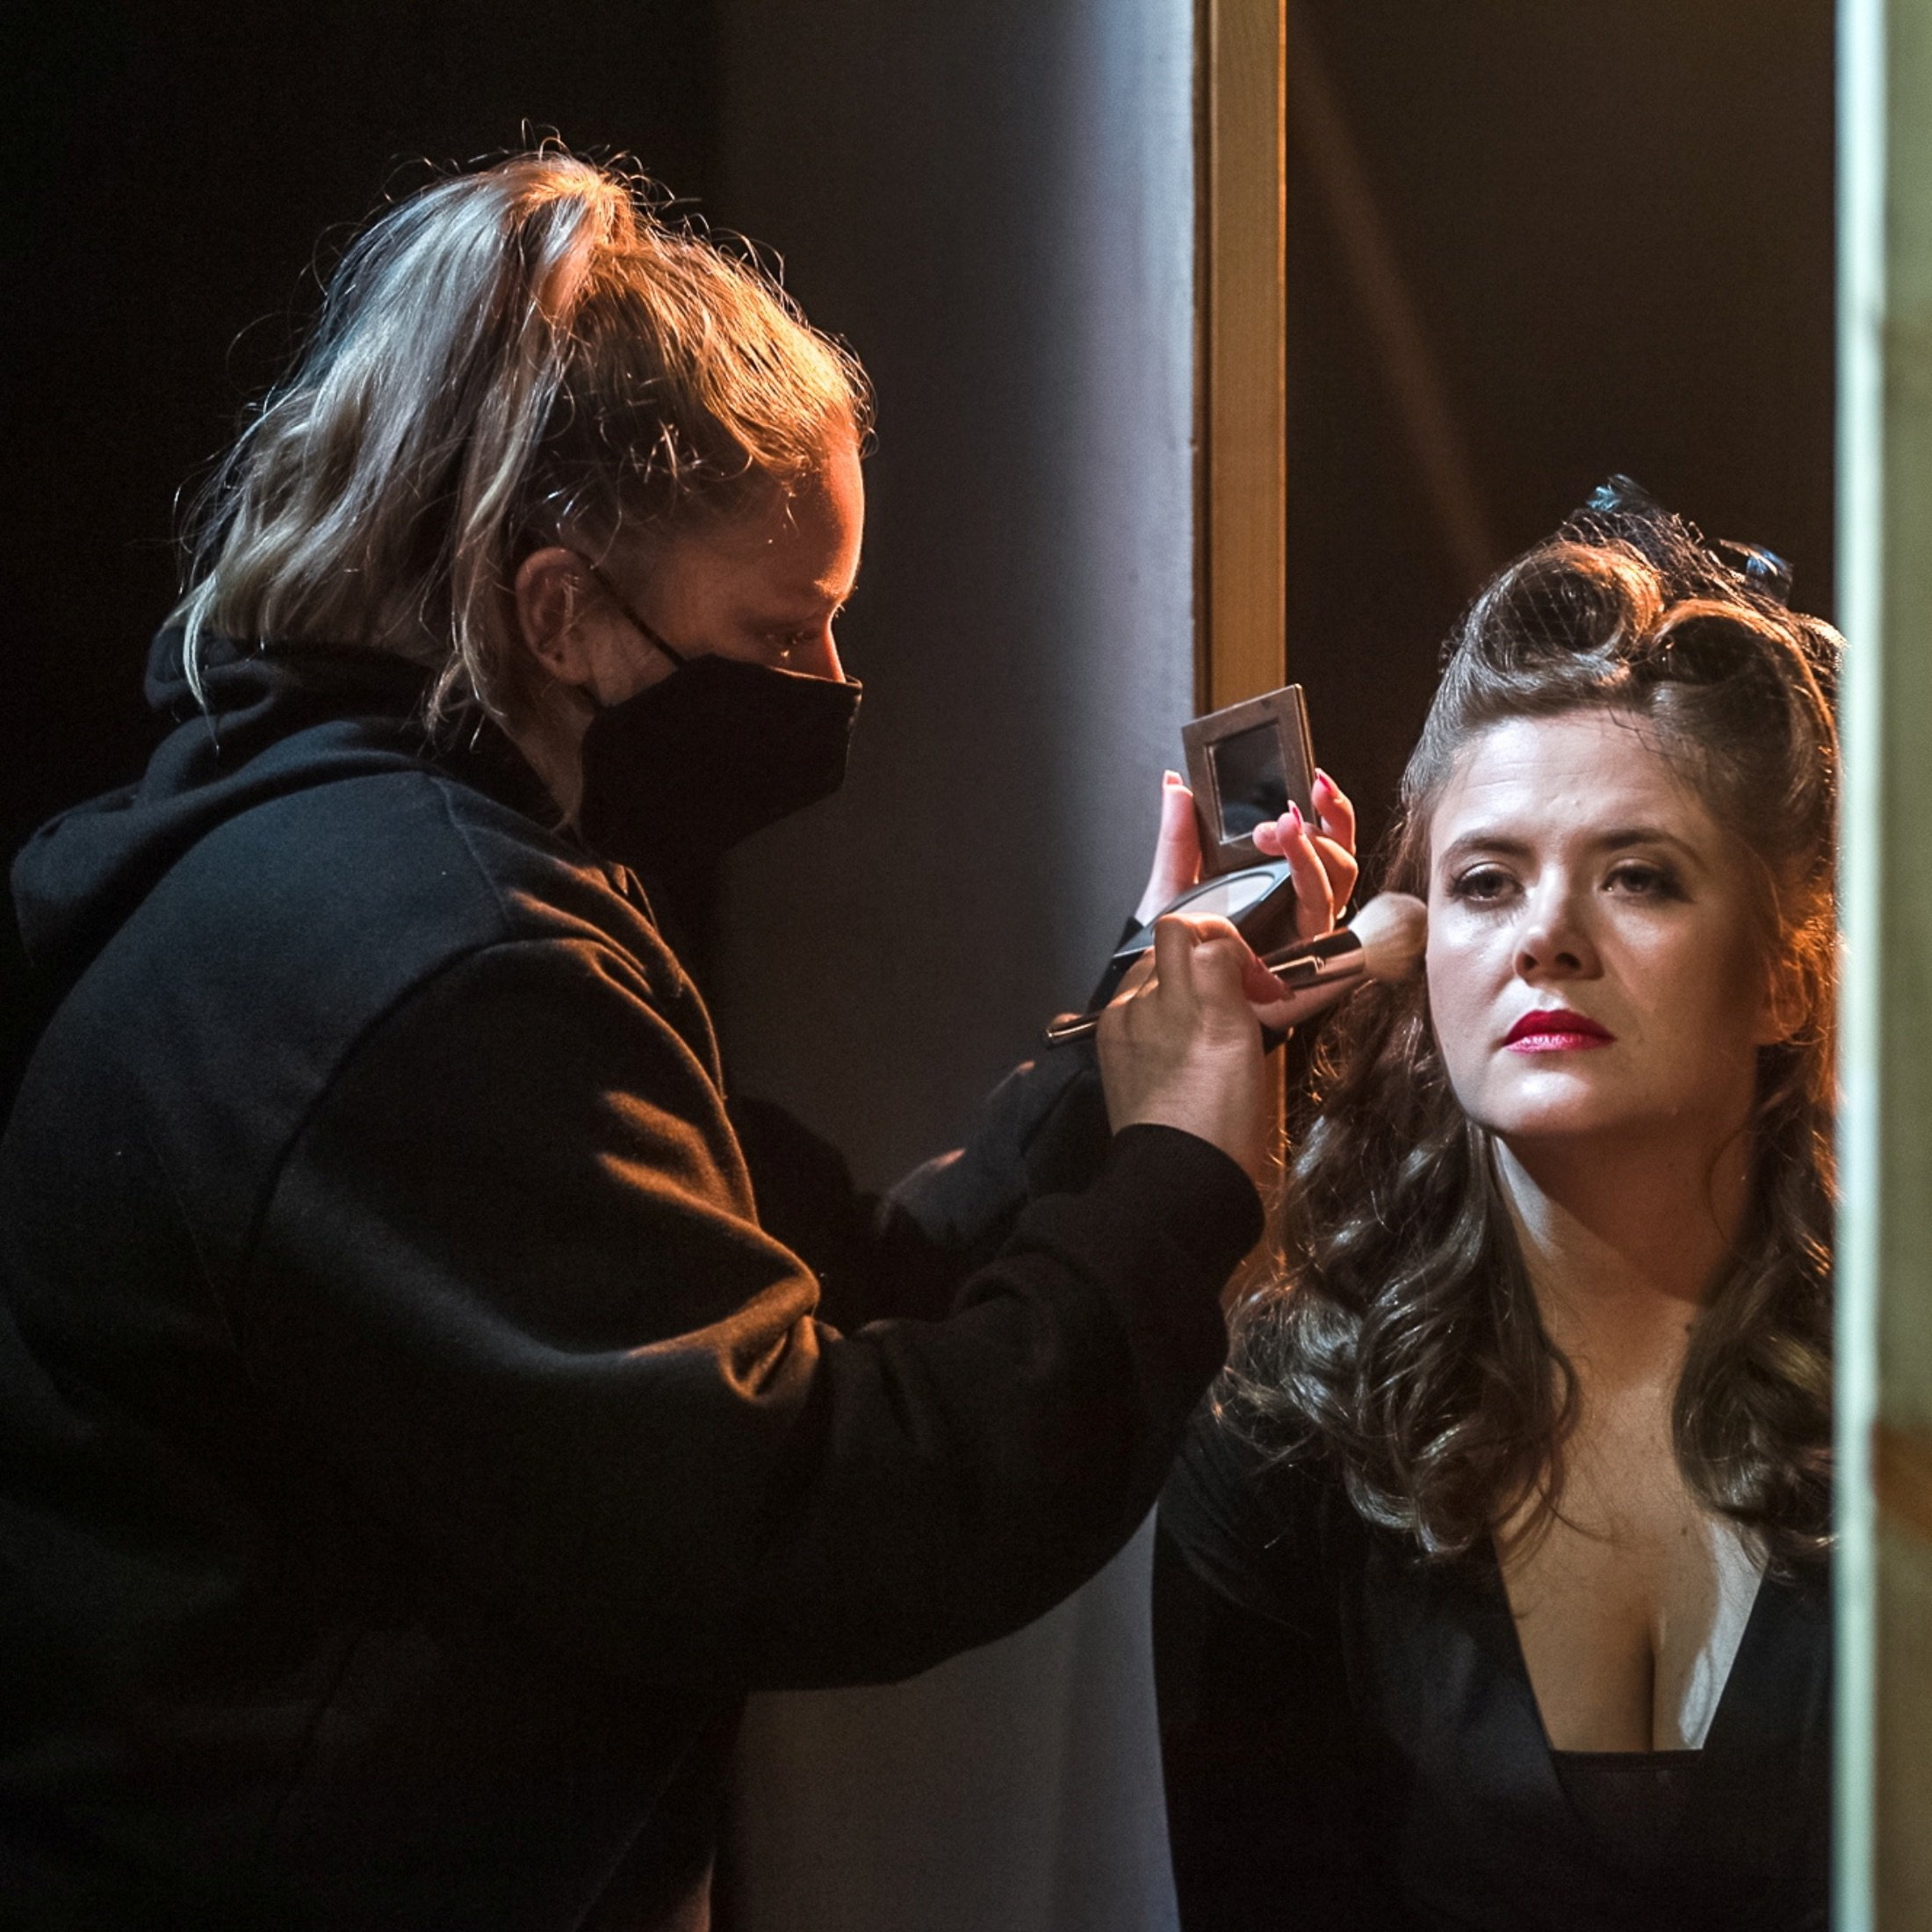 """Actor and artistic director of Black Box Live Joanne Hartstone prepares backstage during a rehearsal of """"The Girl Who Jumped Off The Hollywood Sign"""" at the Bakehouse Theatre in Adelaide, Australia, Aug. 11, 2021. (Black Box Live via Reuters)"""